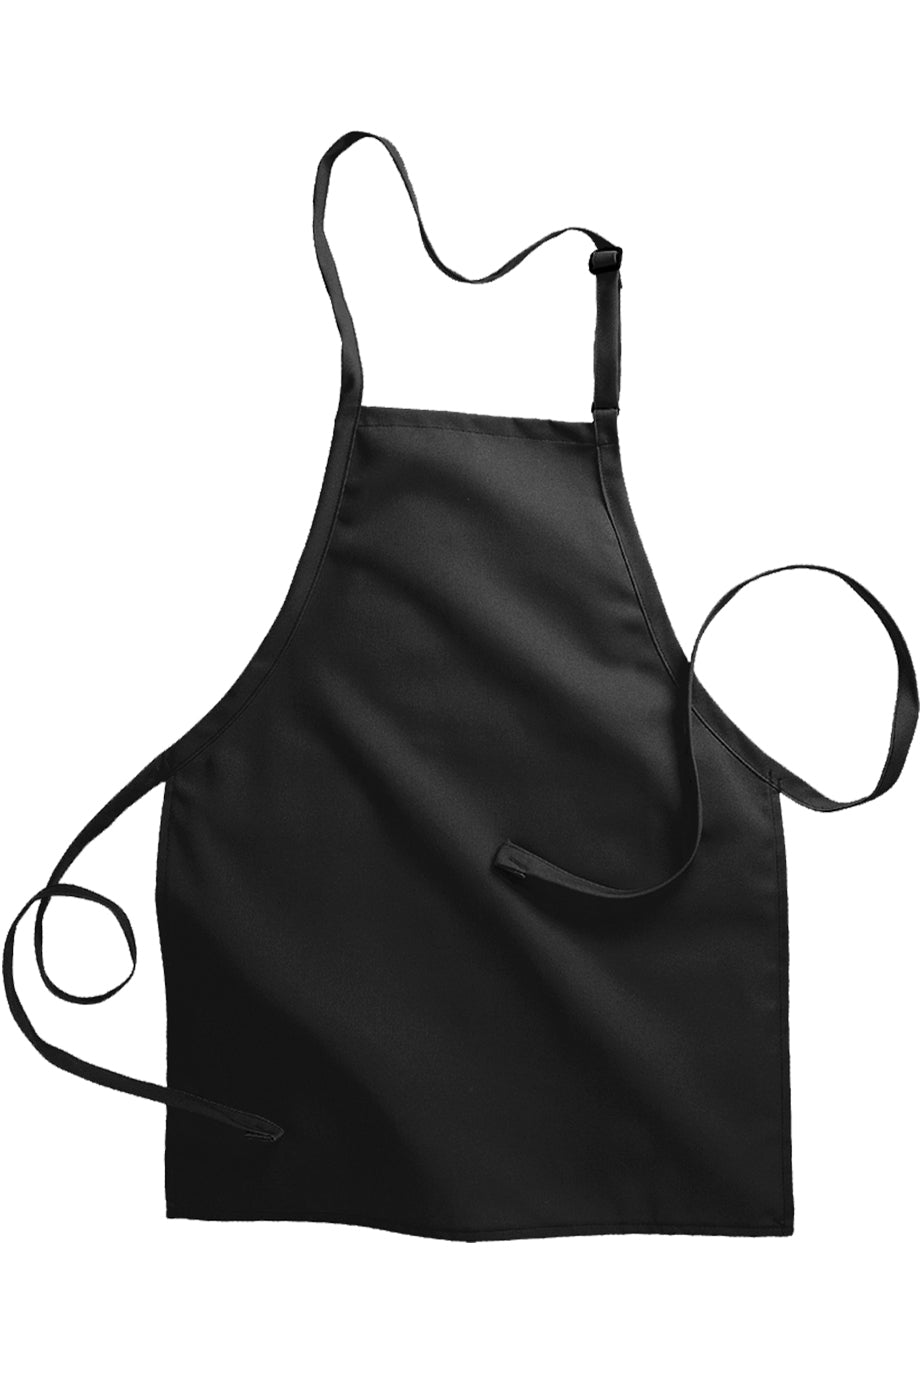 Edwards No-Pocket Bib Apron